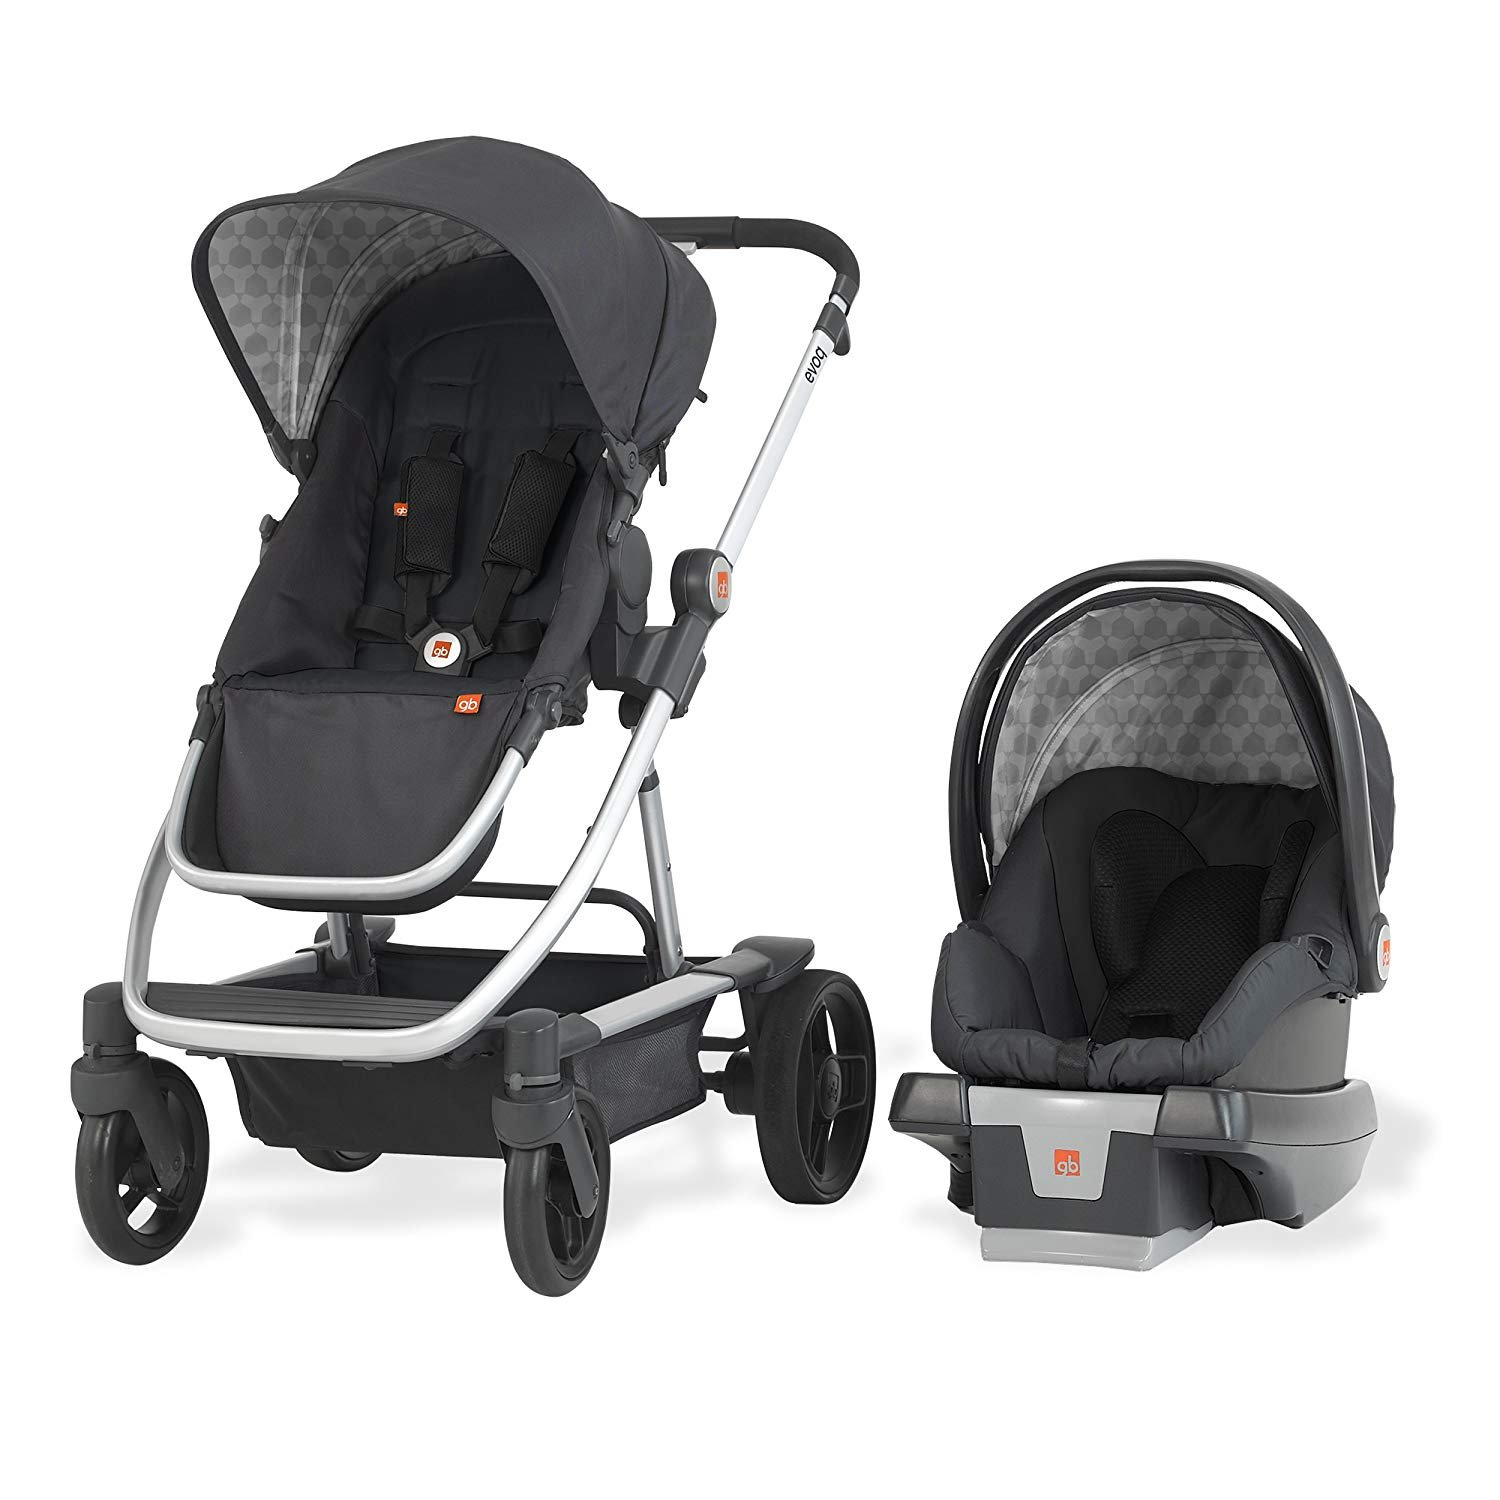 gb Evoq 4-in-1 Travel System, Charcoal by gb (Image #1)